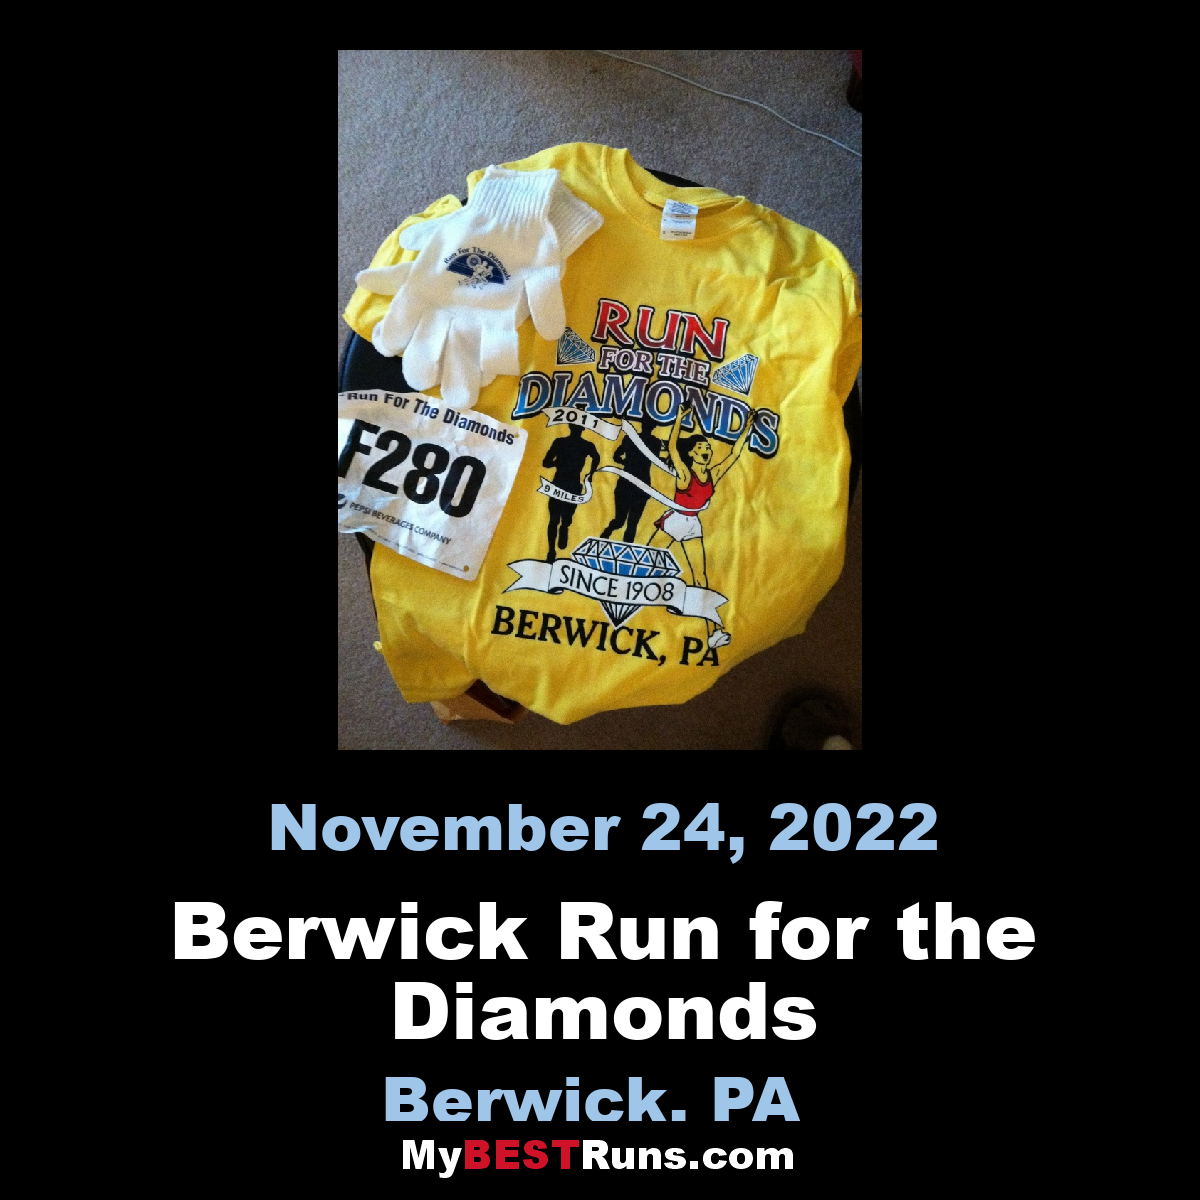 Berwick Run for the Diamonds